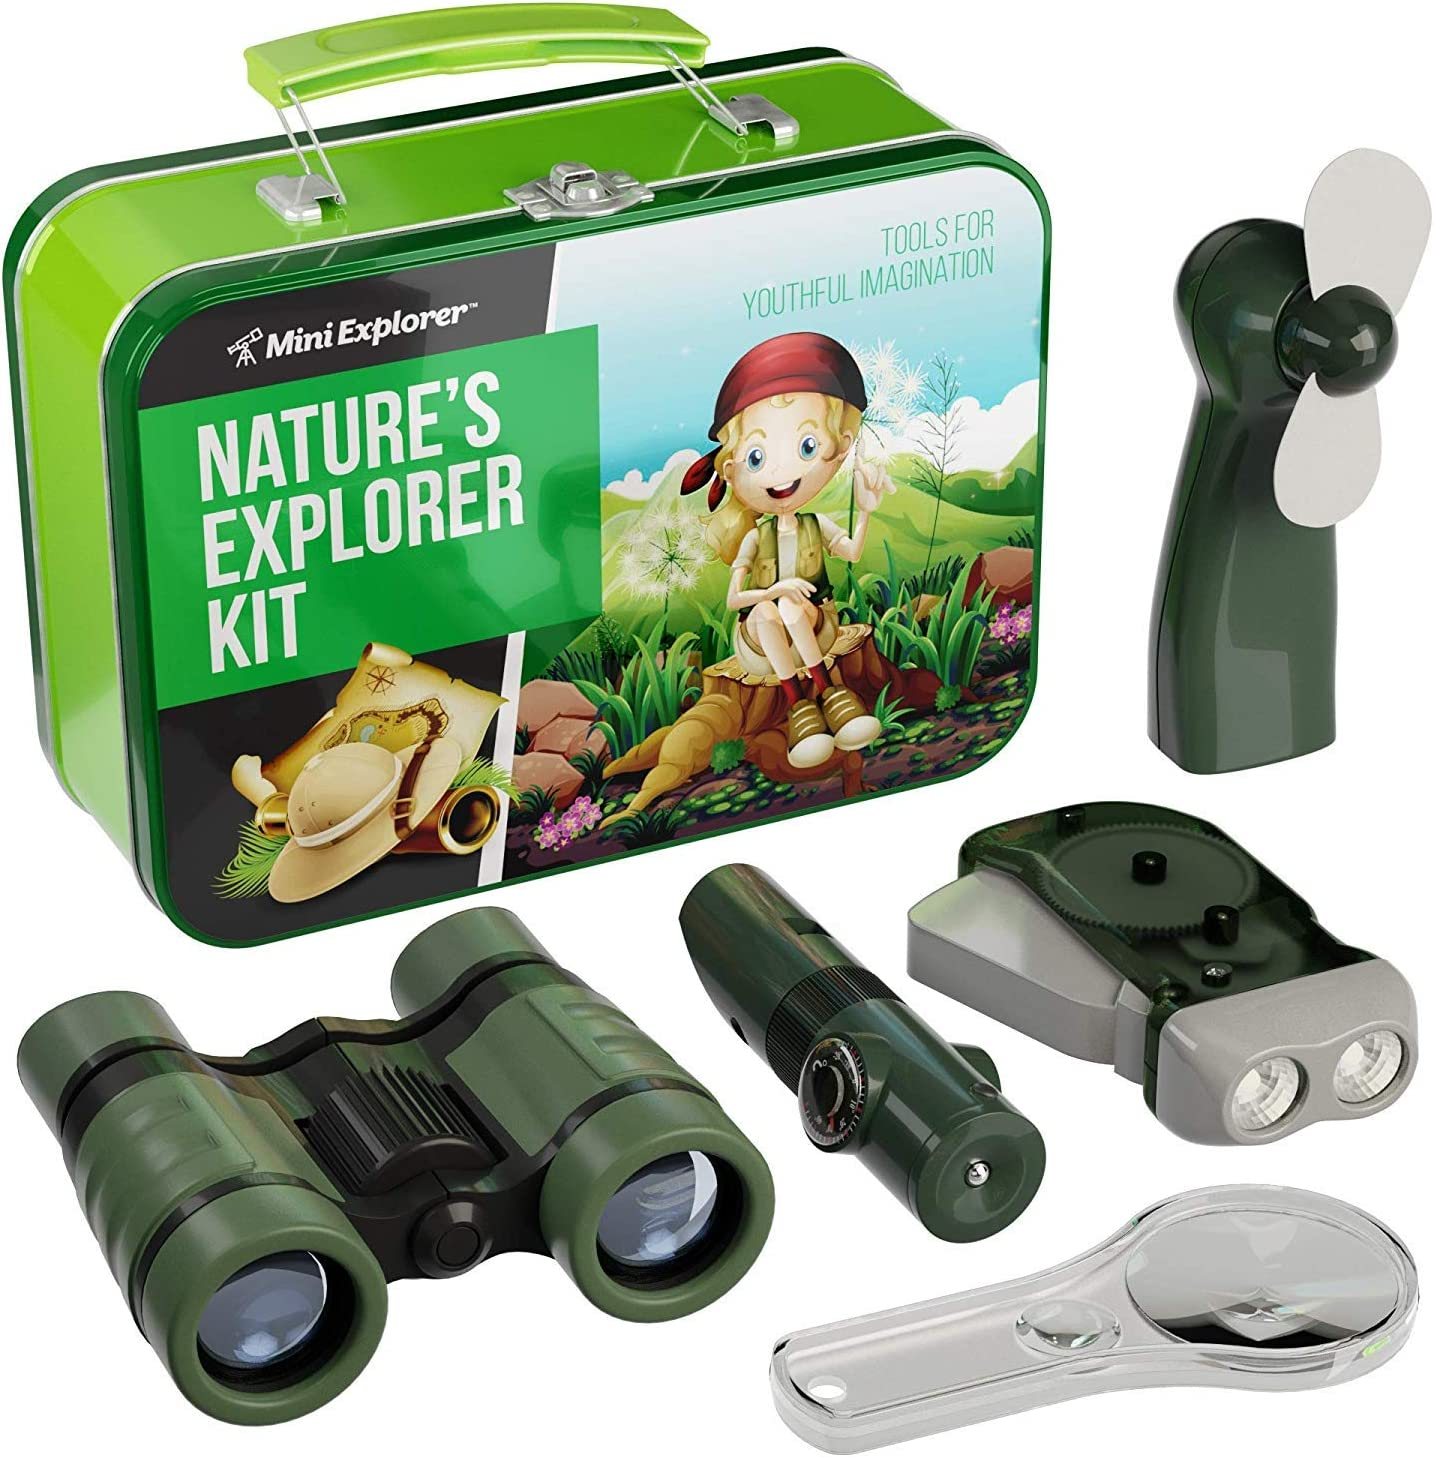 Explorer Kit for Kids - Camping Gear & Outdoor Exploration Gift - Inc: Binoculars, Fan, Magnifying Glass, Crank Flashlight, 5-in-1 Multi Tool & Beautiful Case - Gifts for 4-7 Year Old Boys & Girls